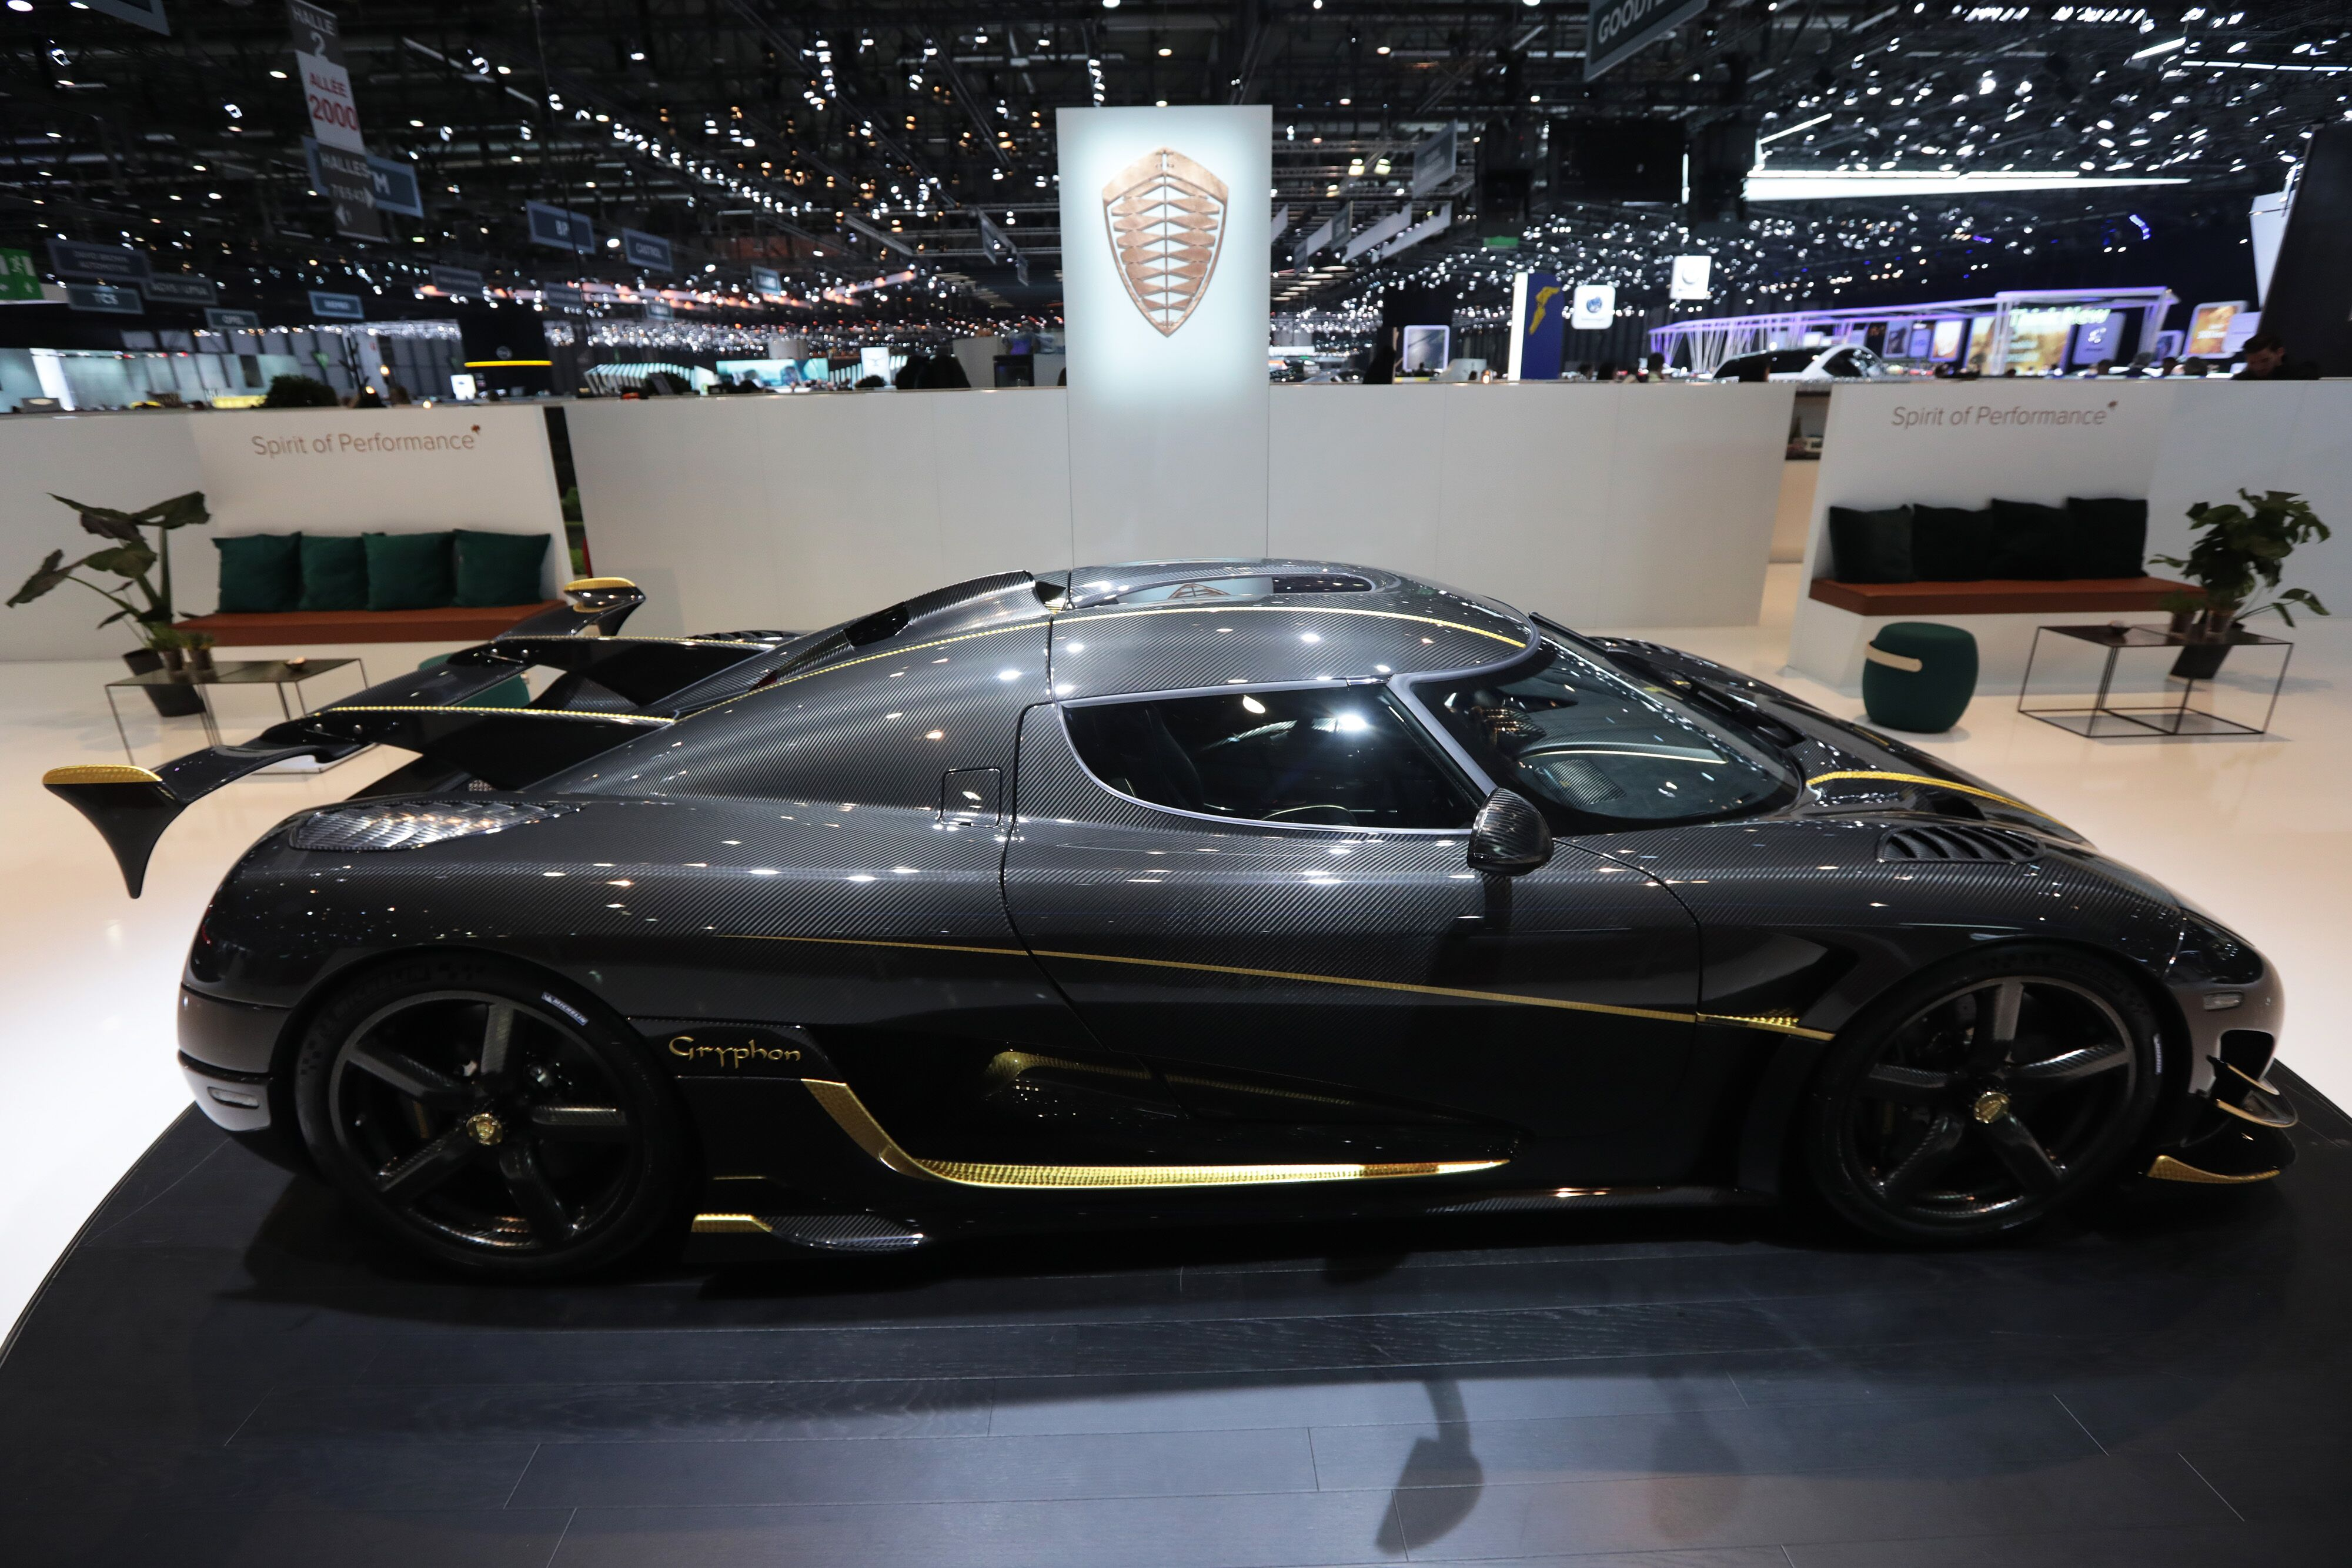 Koenigsegg Agera RS Crash Update: What Will Happen To The Car?